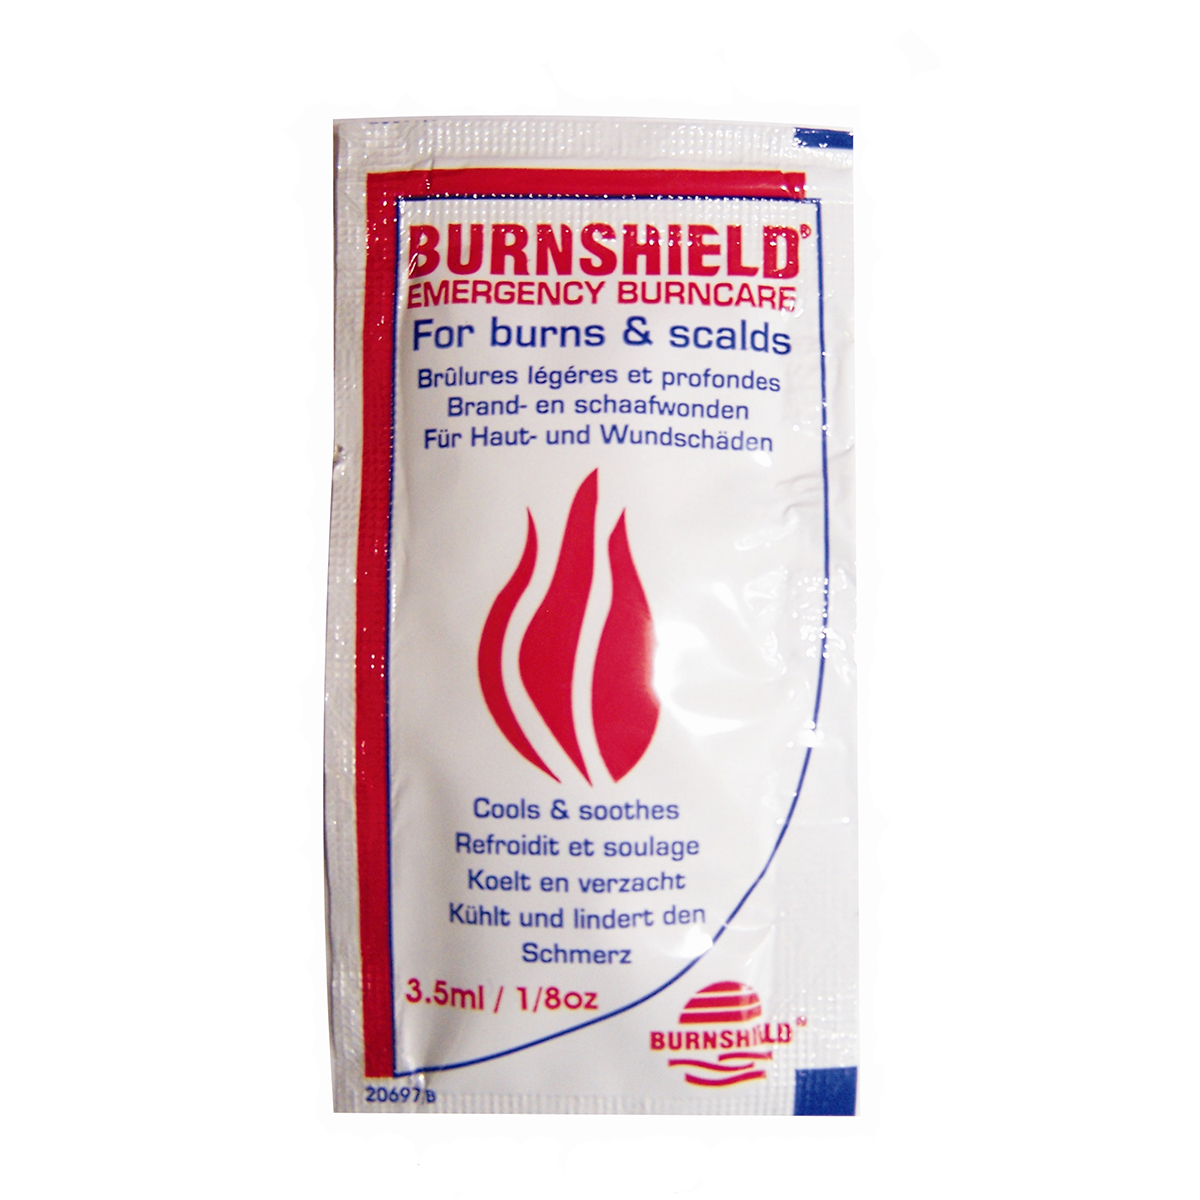 Pack of 3 3.5ml Burnshield® Blott Sachets